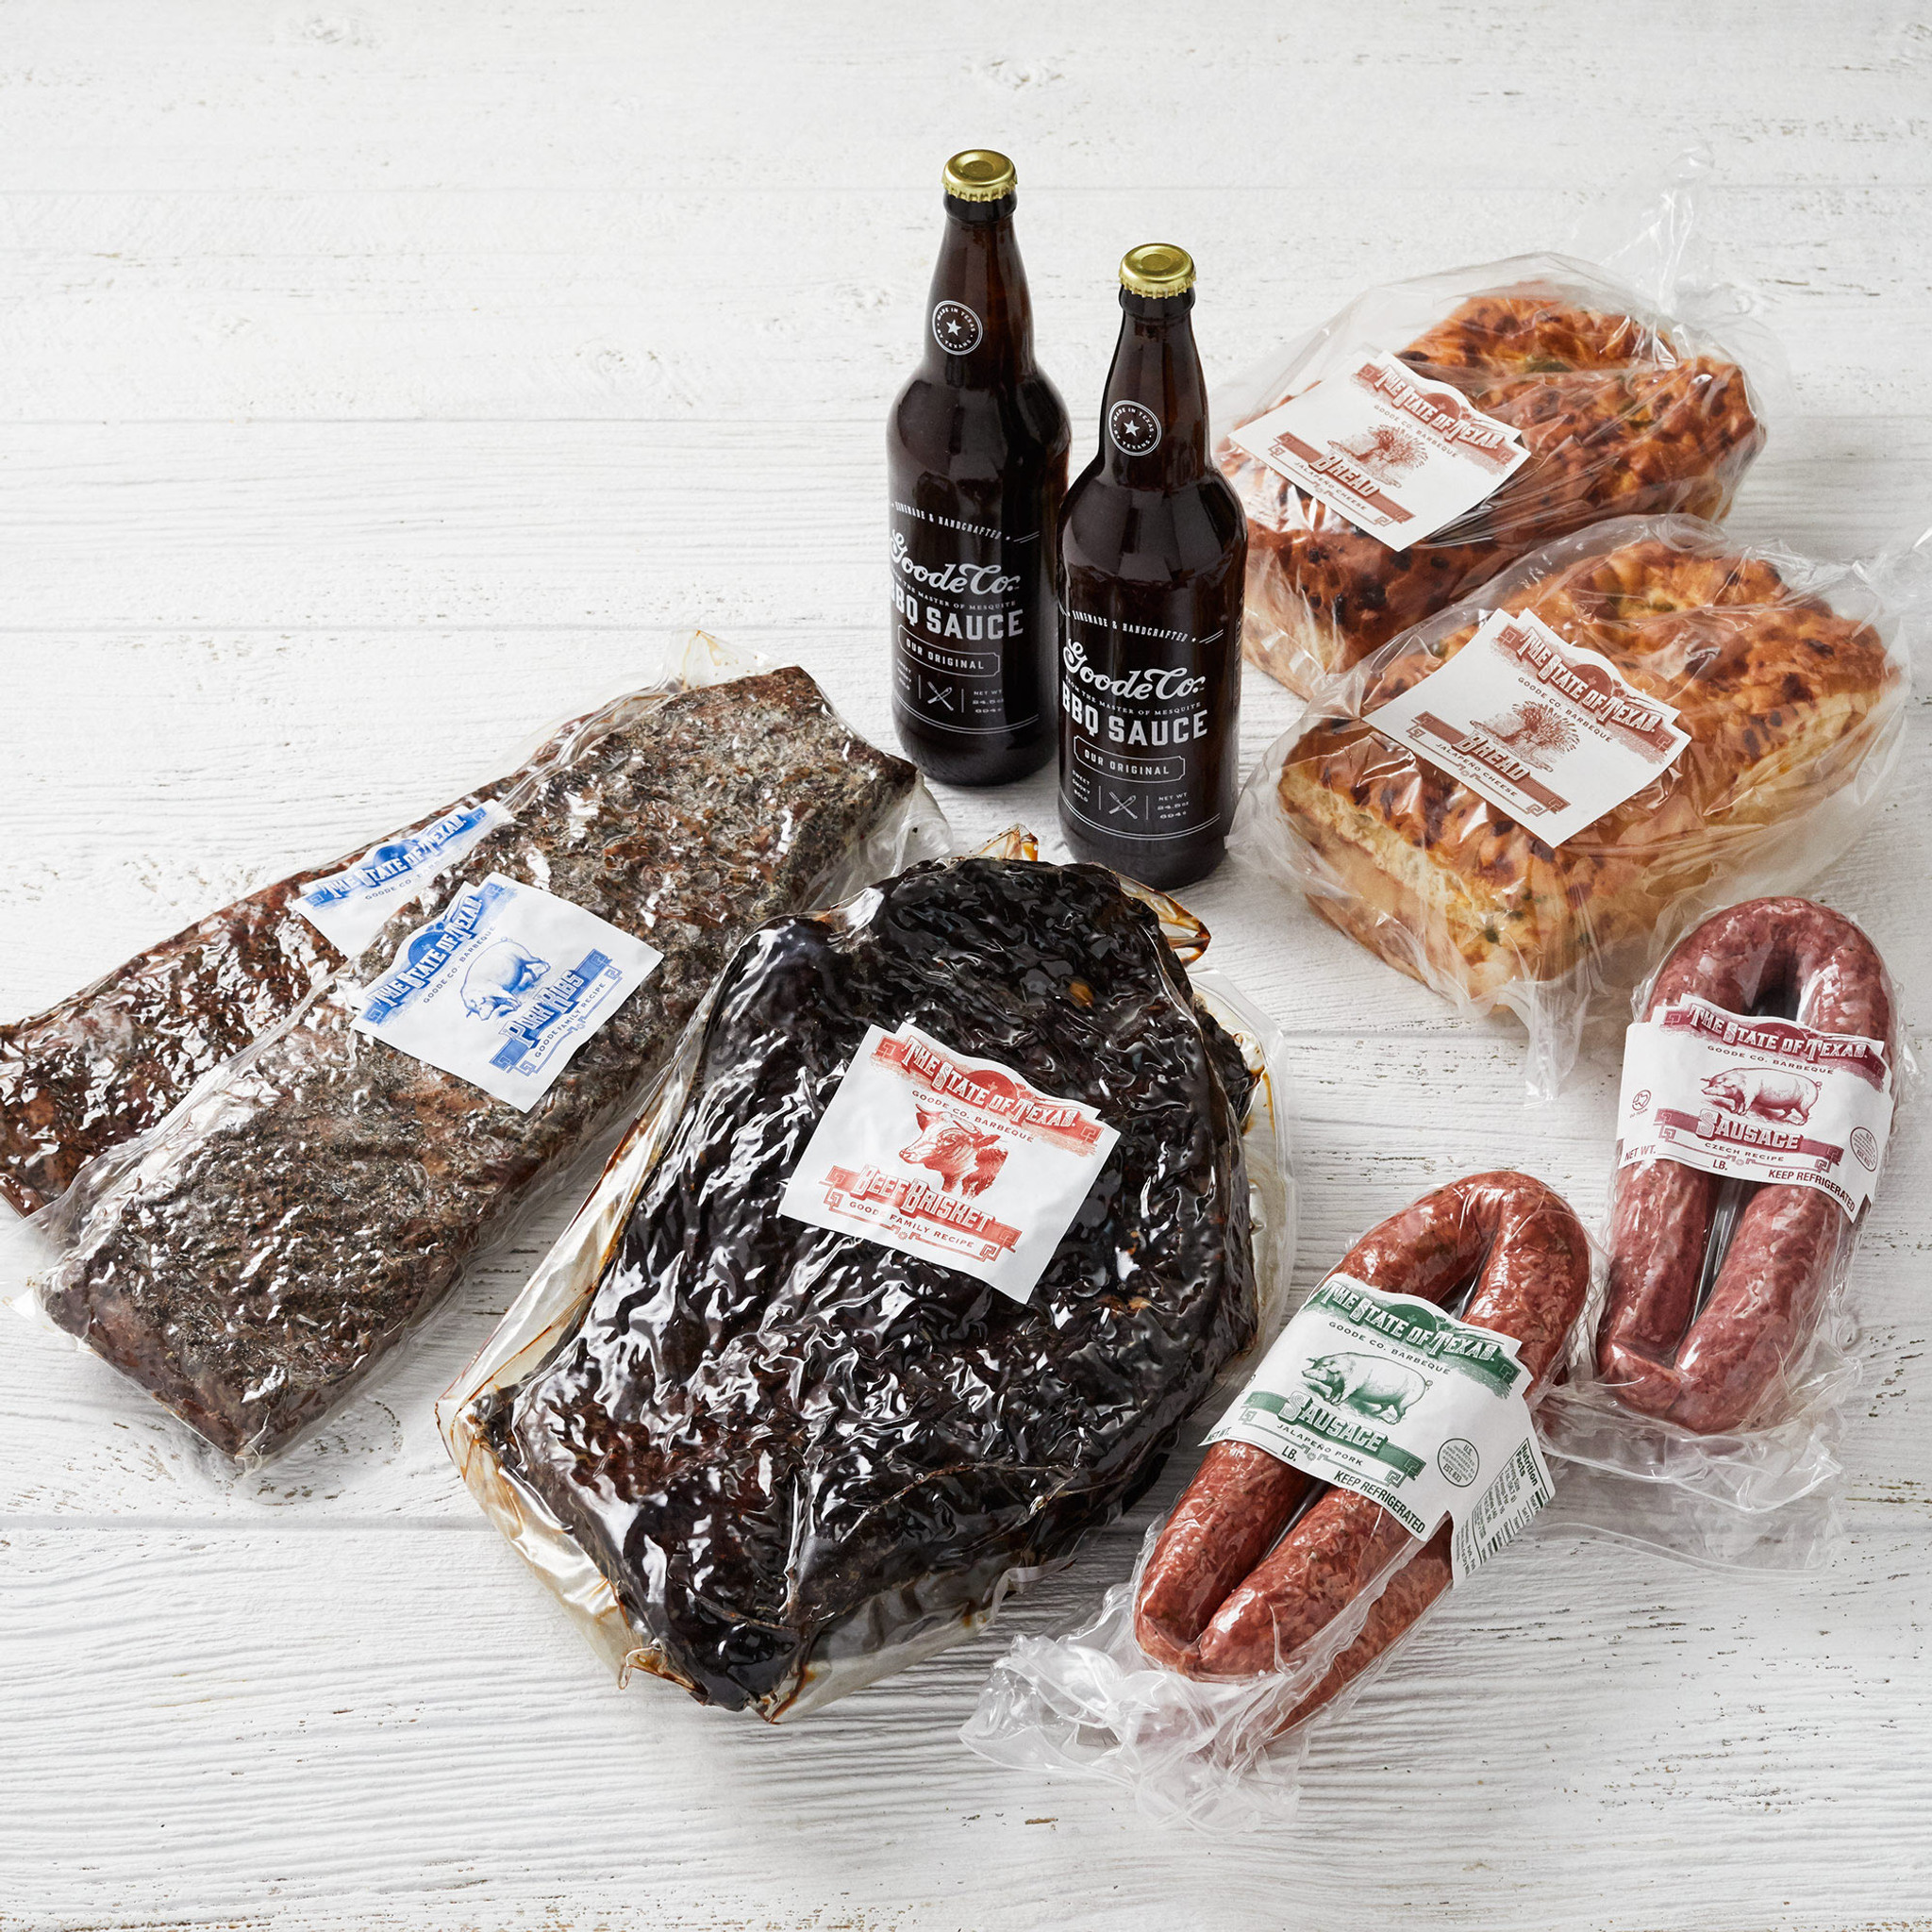 Shipping packaging for Goode Co's Davy Crockett meal bundle, delivered with vacuum-sealed smoked brisket, 2 pork ribs, 4 links of Texas sausages, 2 glass bottles of Goode's Original BBQ sauce, and 2 loaves of jalapeño cheese bread.